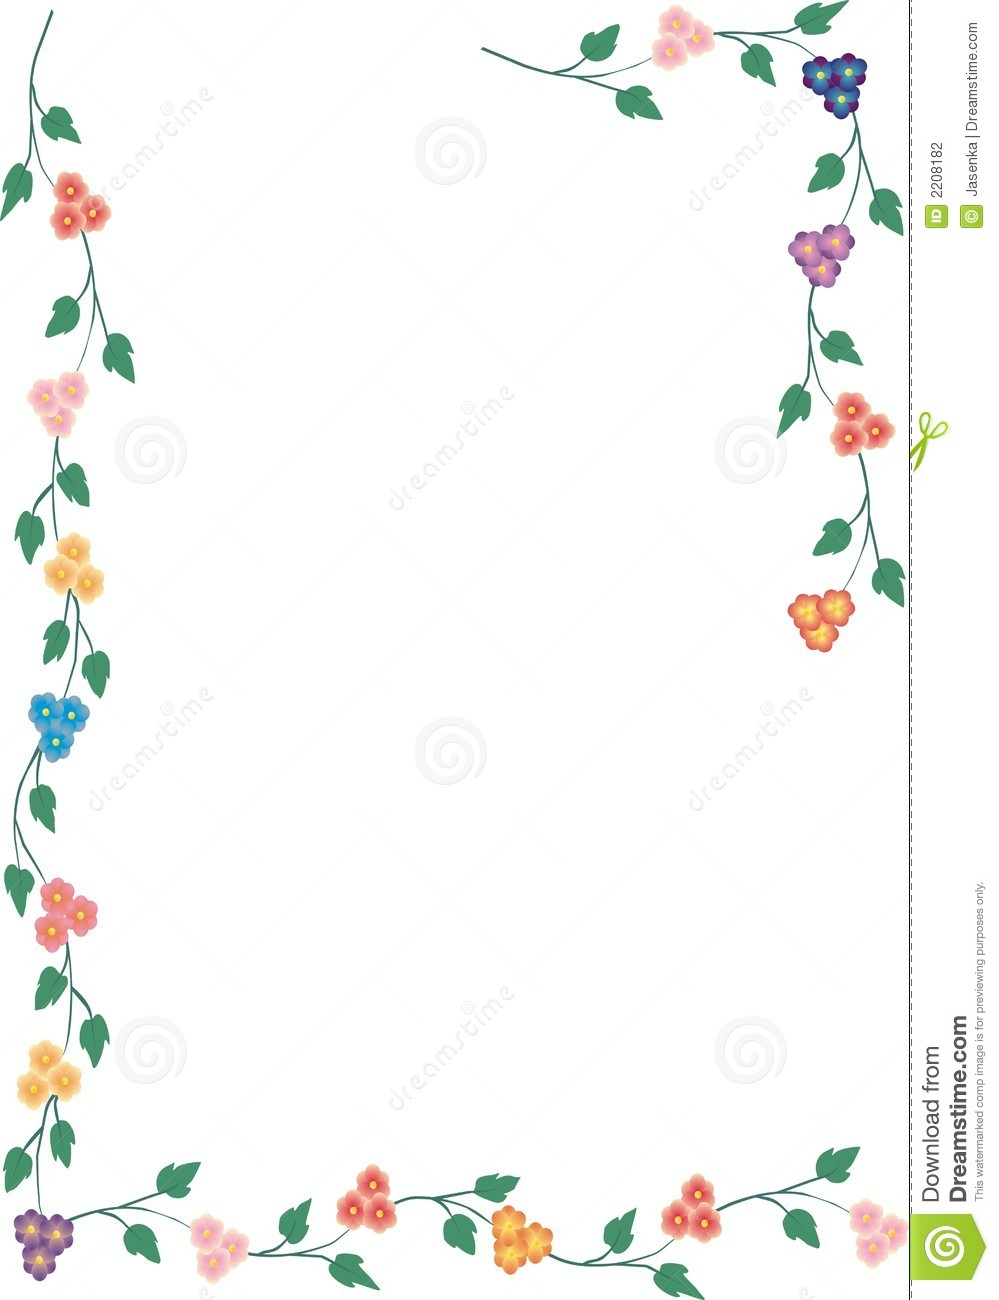 flower frame stock photography image 2208182